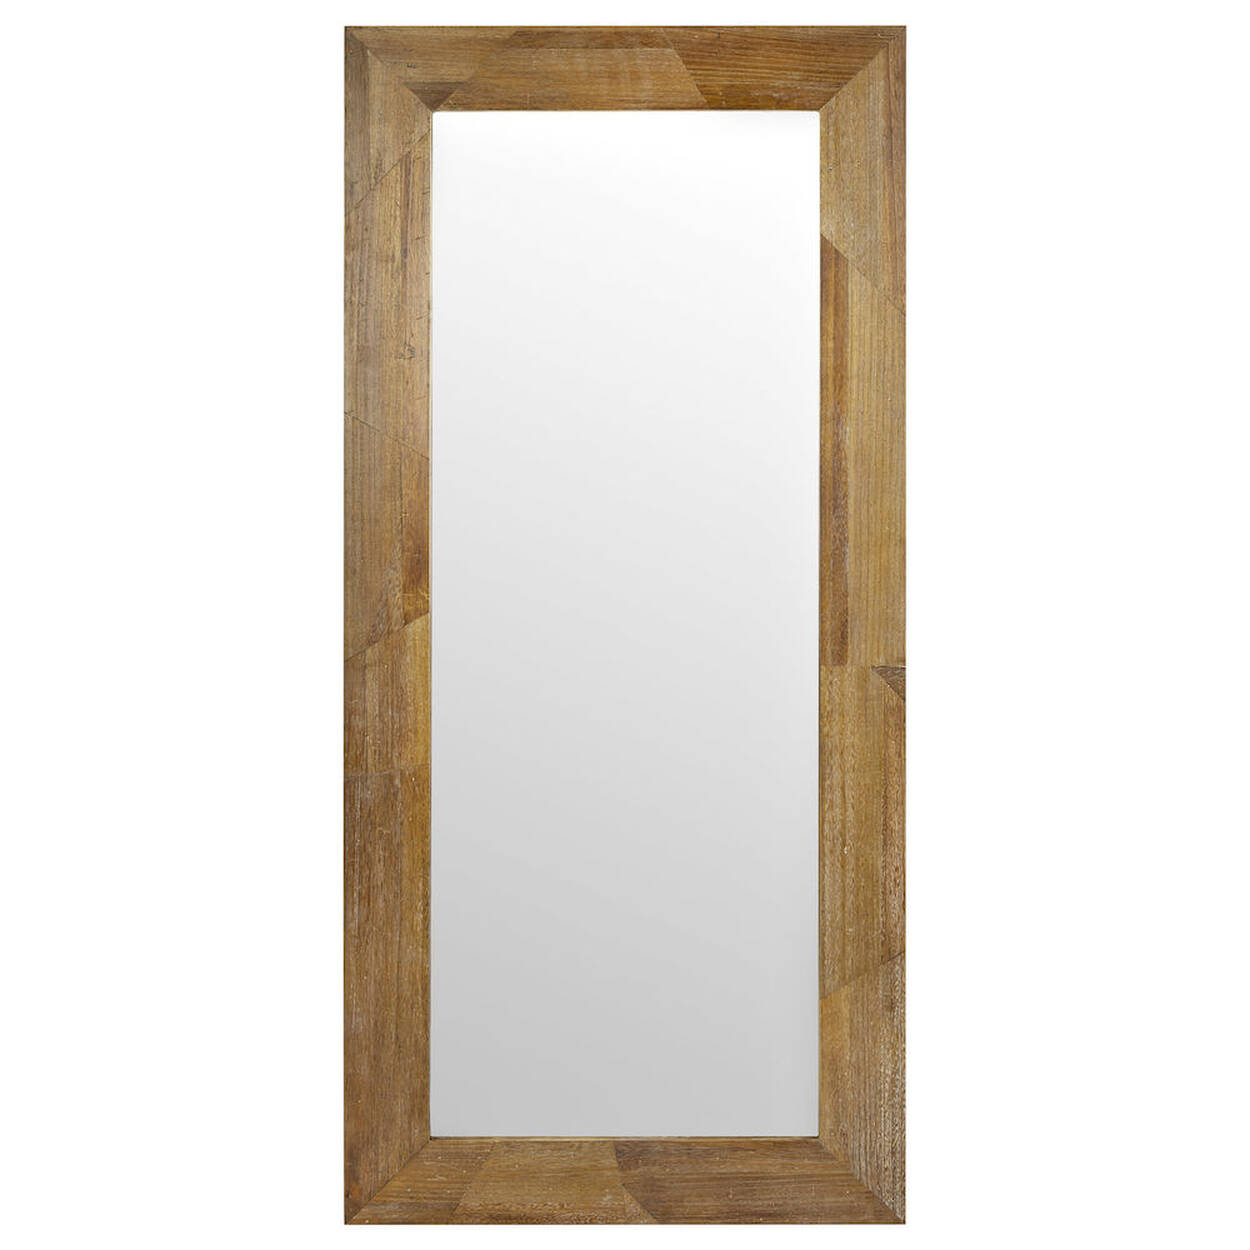 Wooden Frame Mirror | Bouclair.com